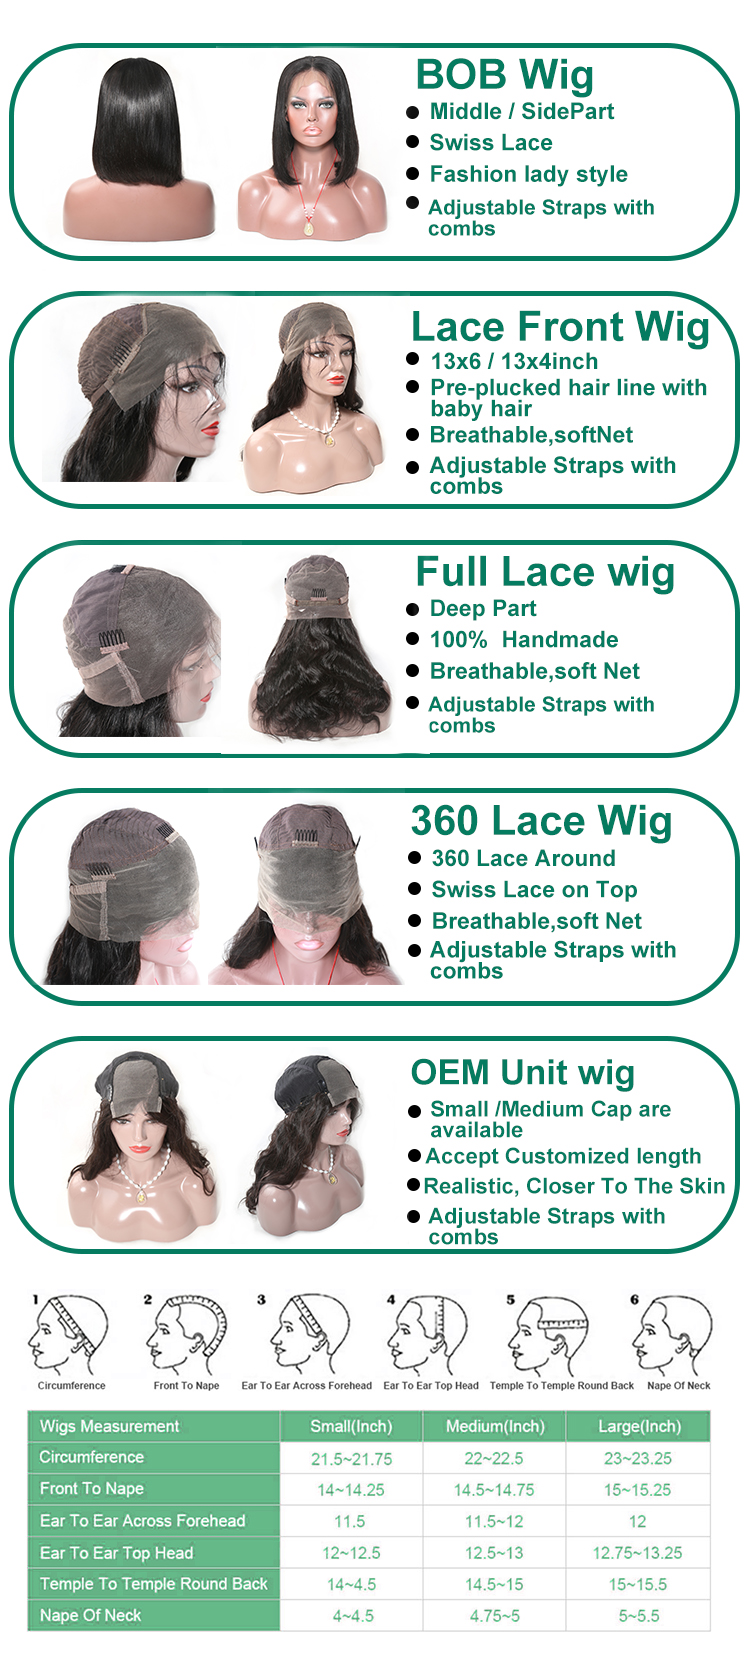 JcXBL Factory 613 Virgin Hair Lace Front Wigs,wholesale 613 13x6 lace front wig,613 cuticle aligned virgin HD lace wig for women